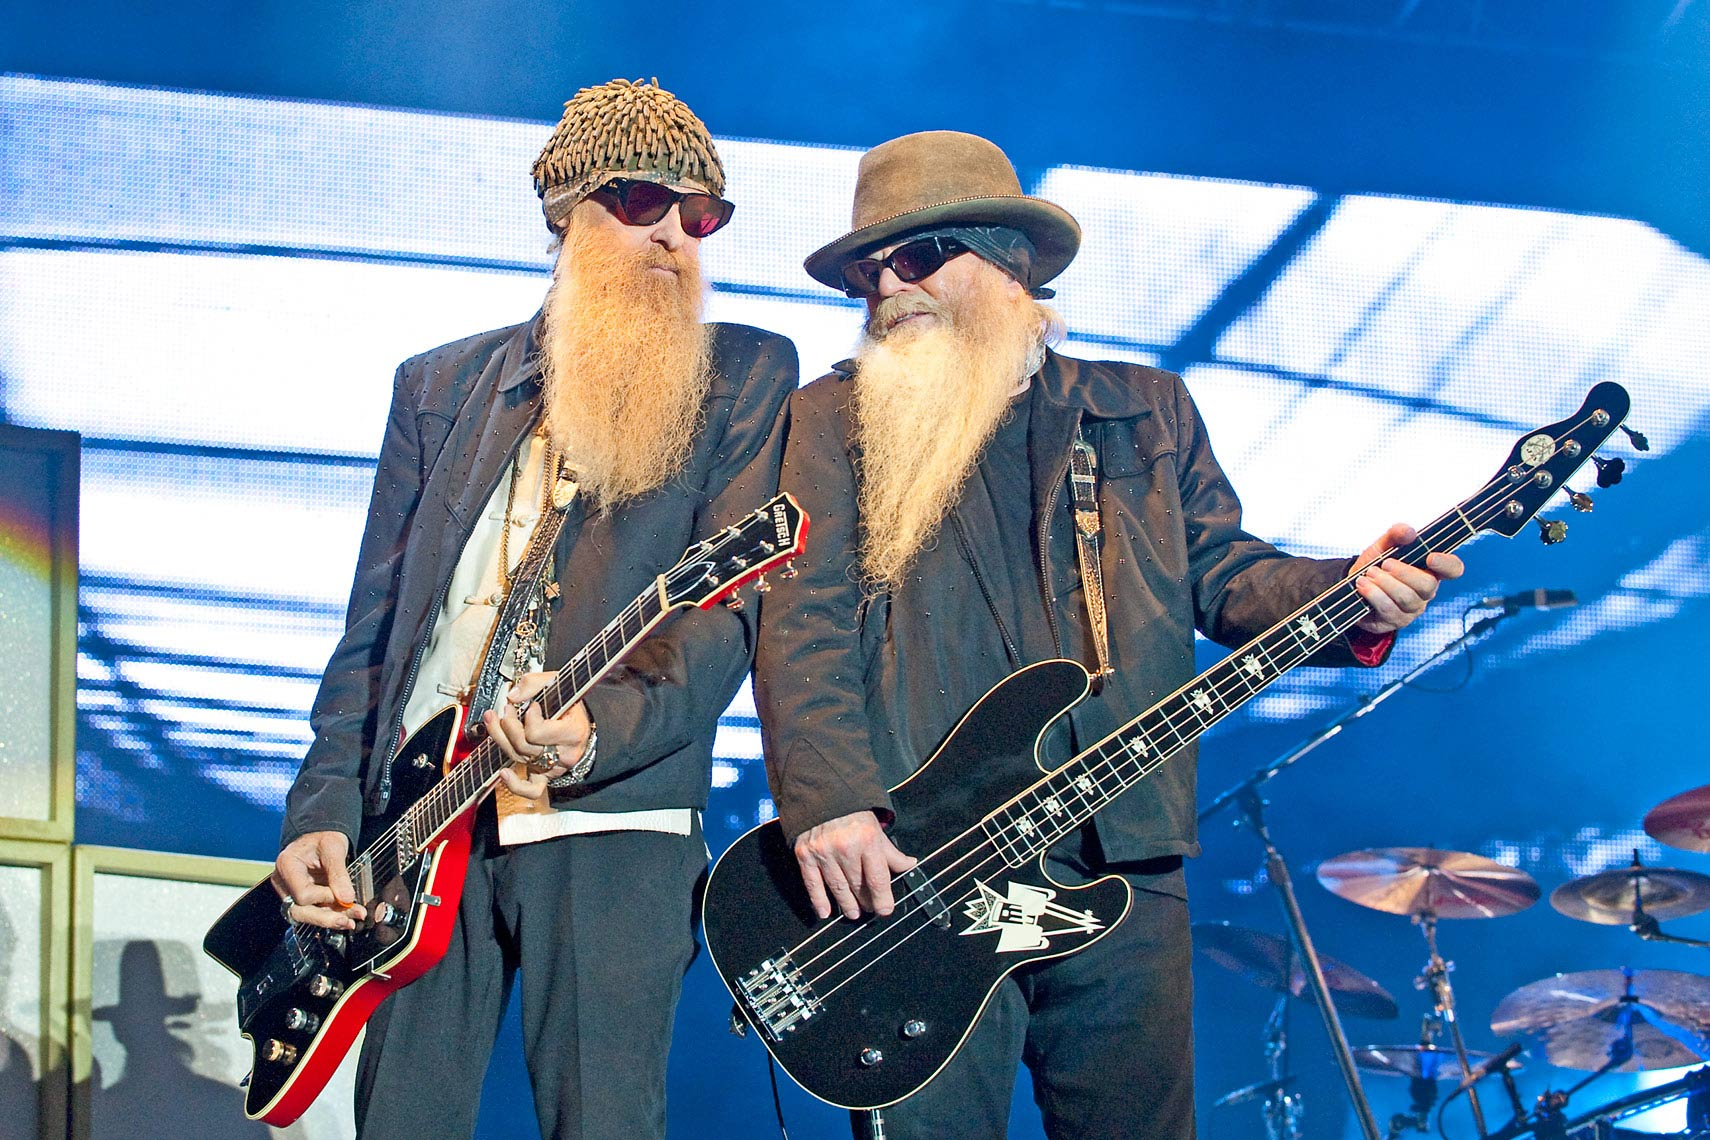 Billy-Gibbons-Dusty-Hill-ZZ-Top-High-Voltage.jpg